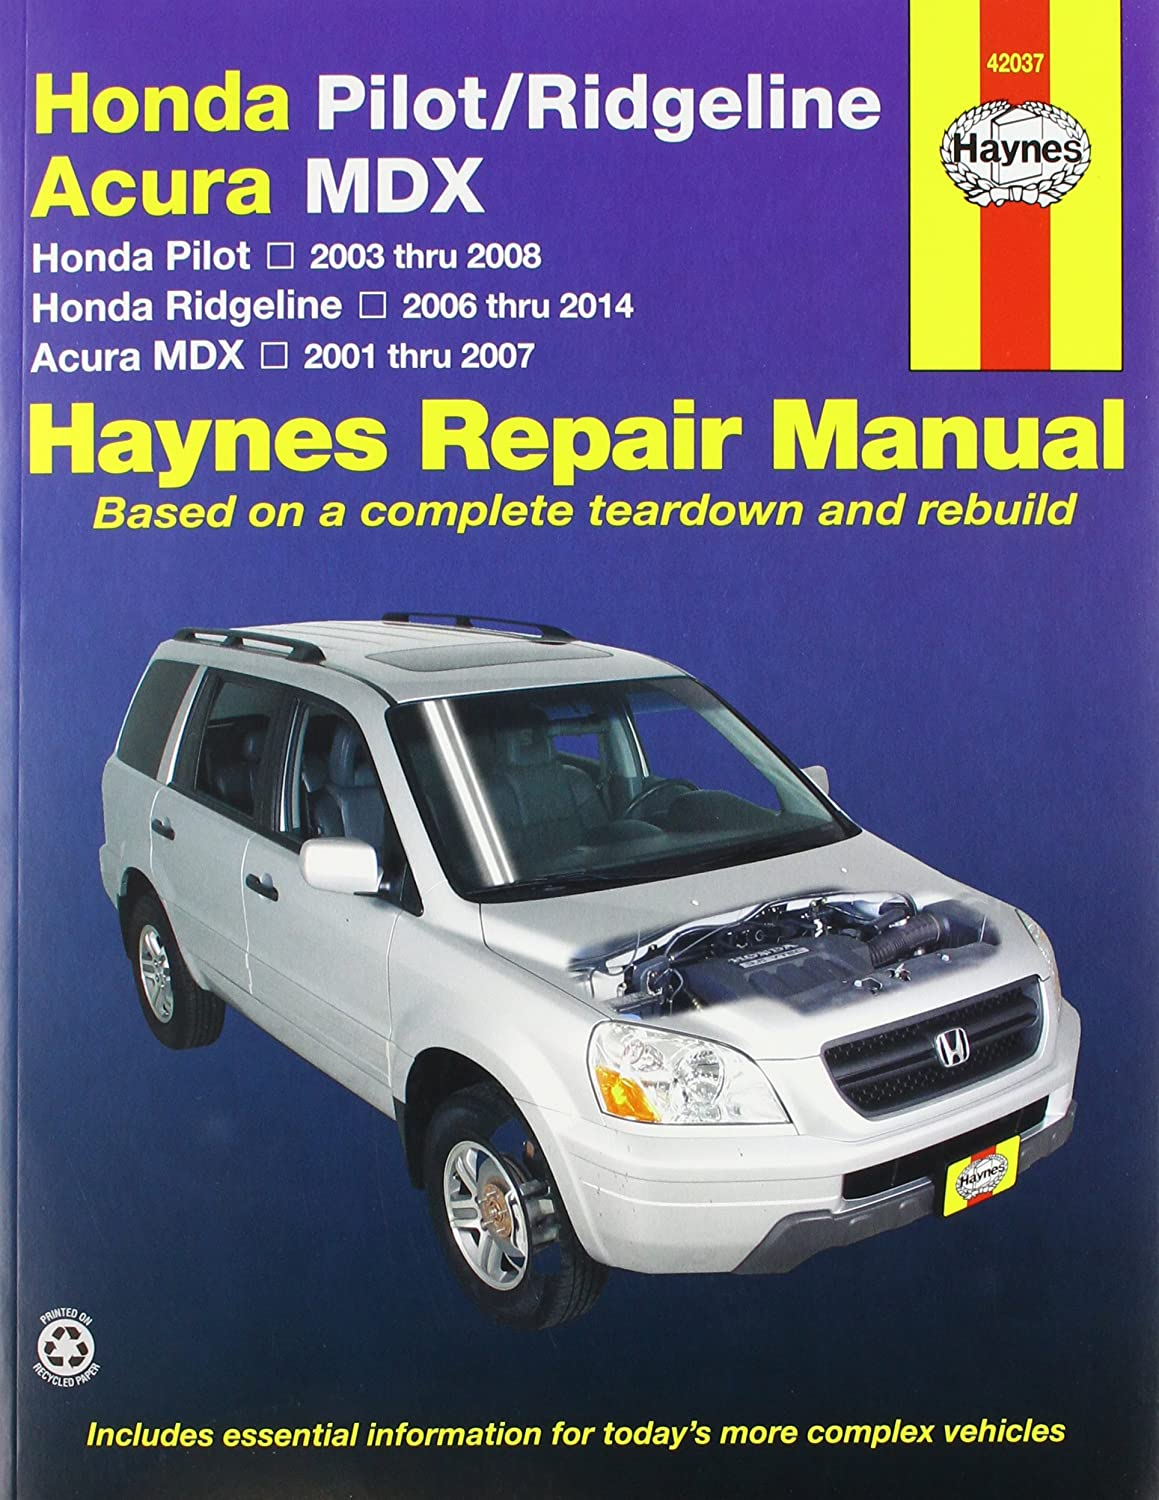 Amazon.com: Acura MDX, Honda Pilot & Ridgeline Haynes Manual (2001-2012):  Automotive